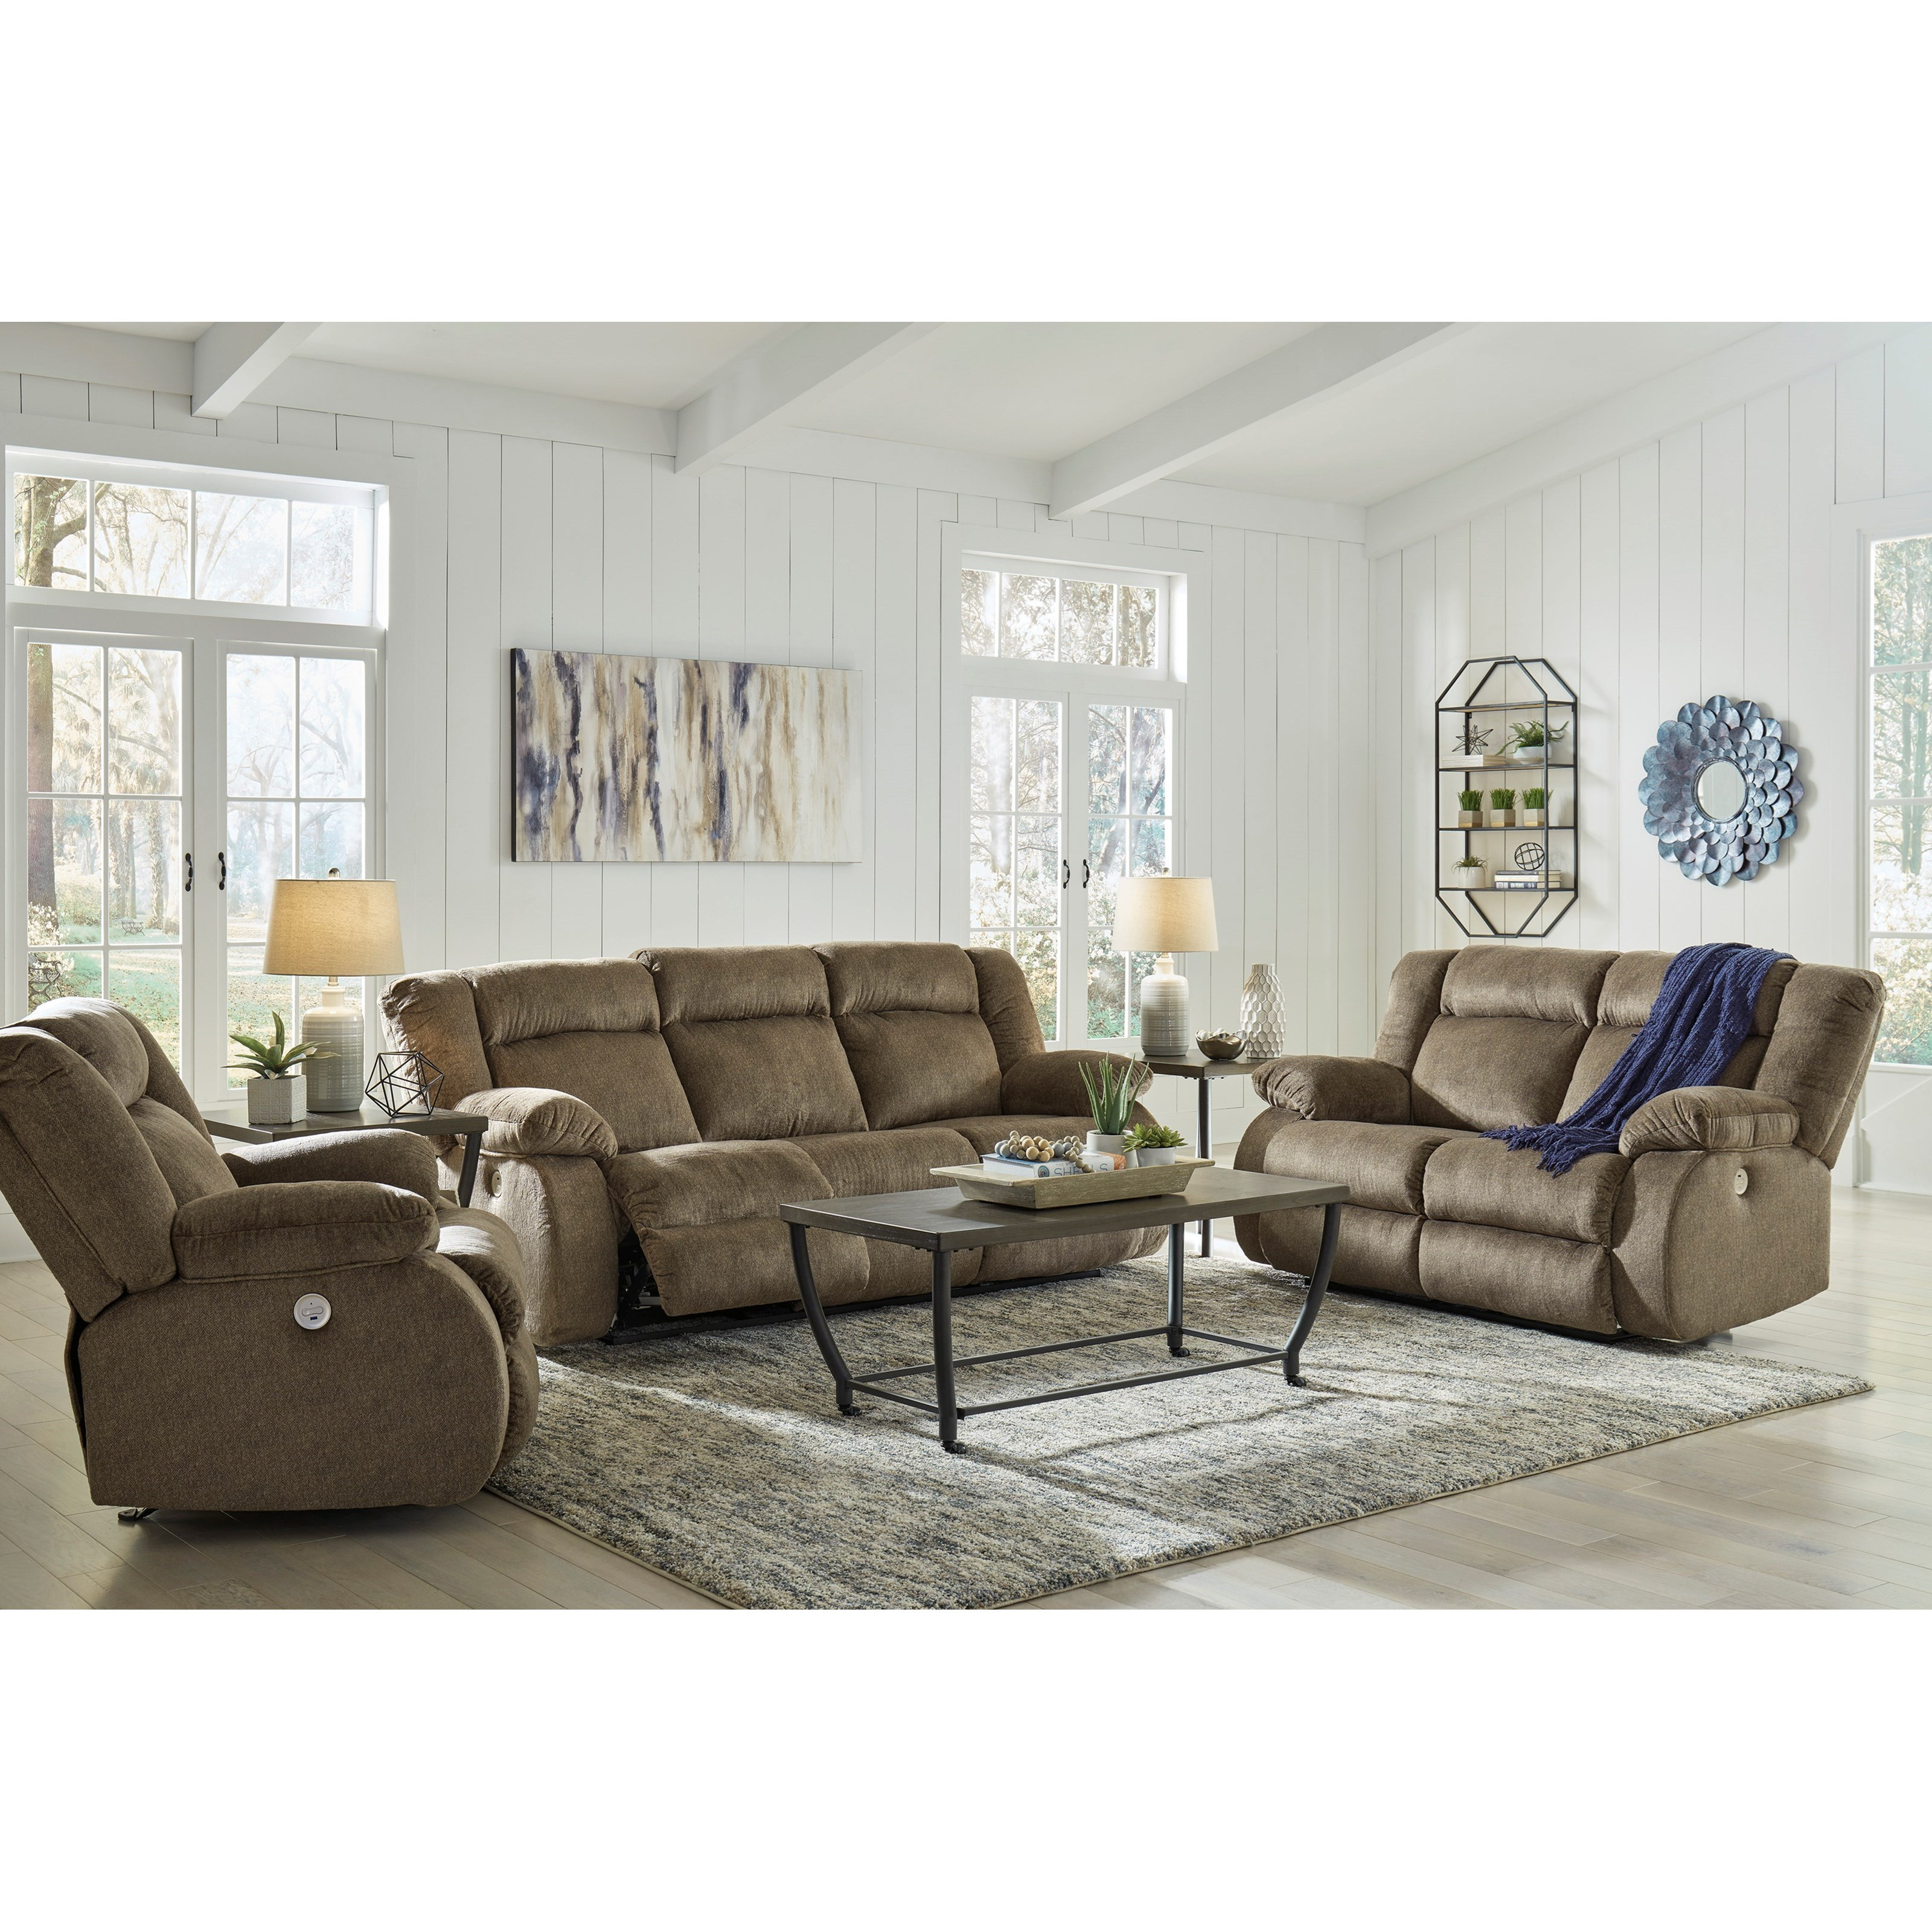 Burkner Power Reclining Living Room Group by Signature Design by Ashley at Zak's Warehouse Clearance Center